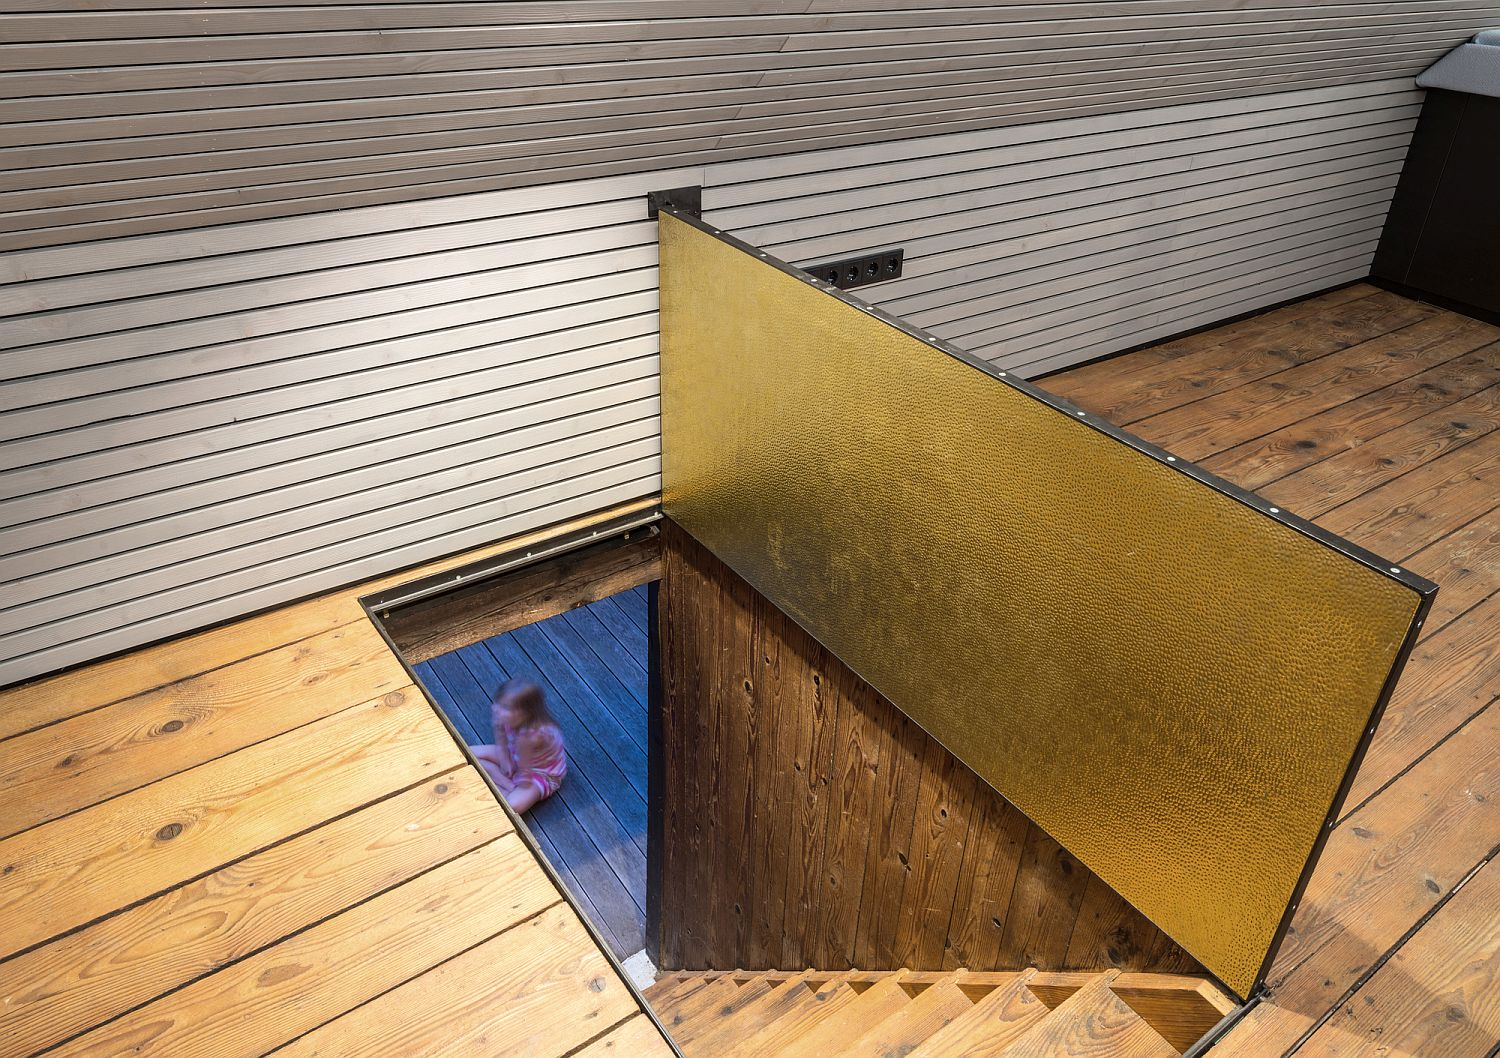 Small-and-cozy-attic-getaway-with-a-brass-trapdoor